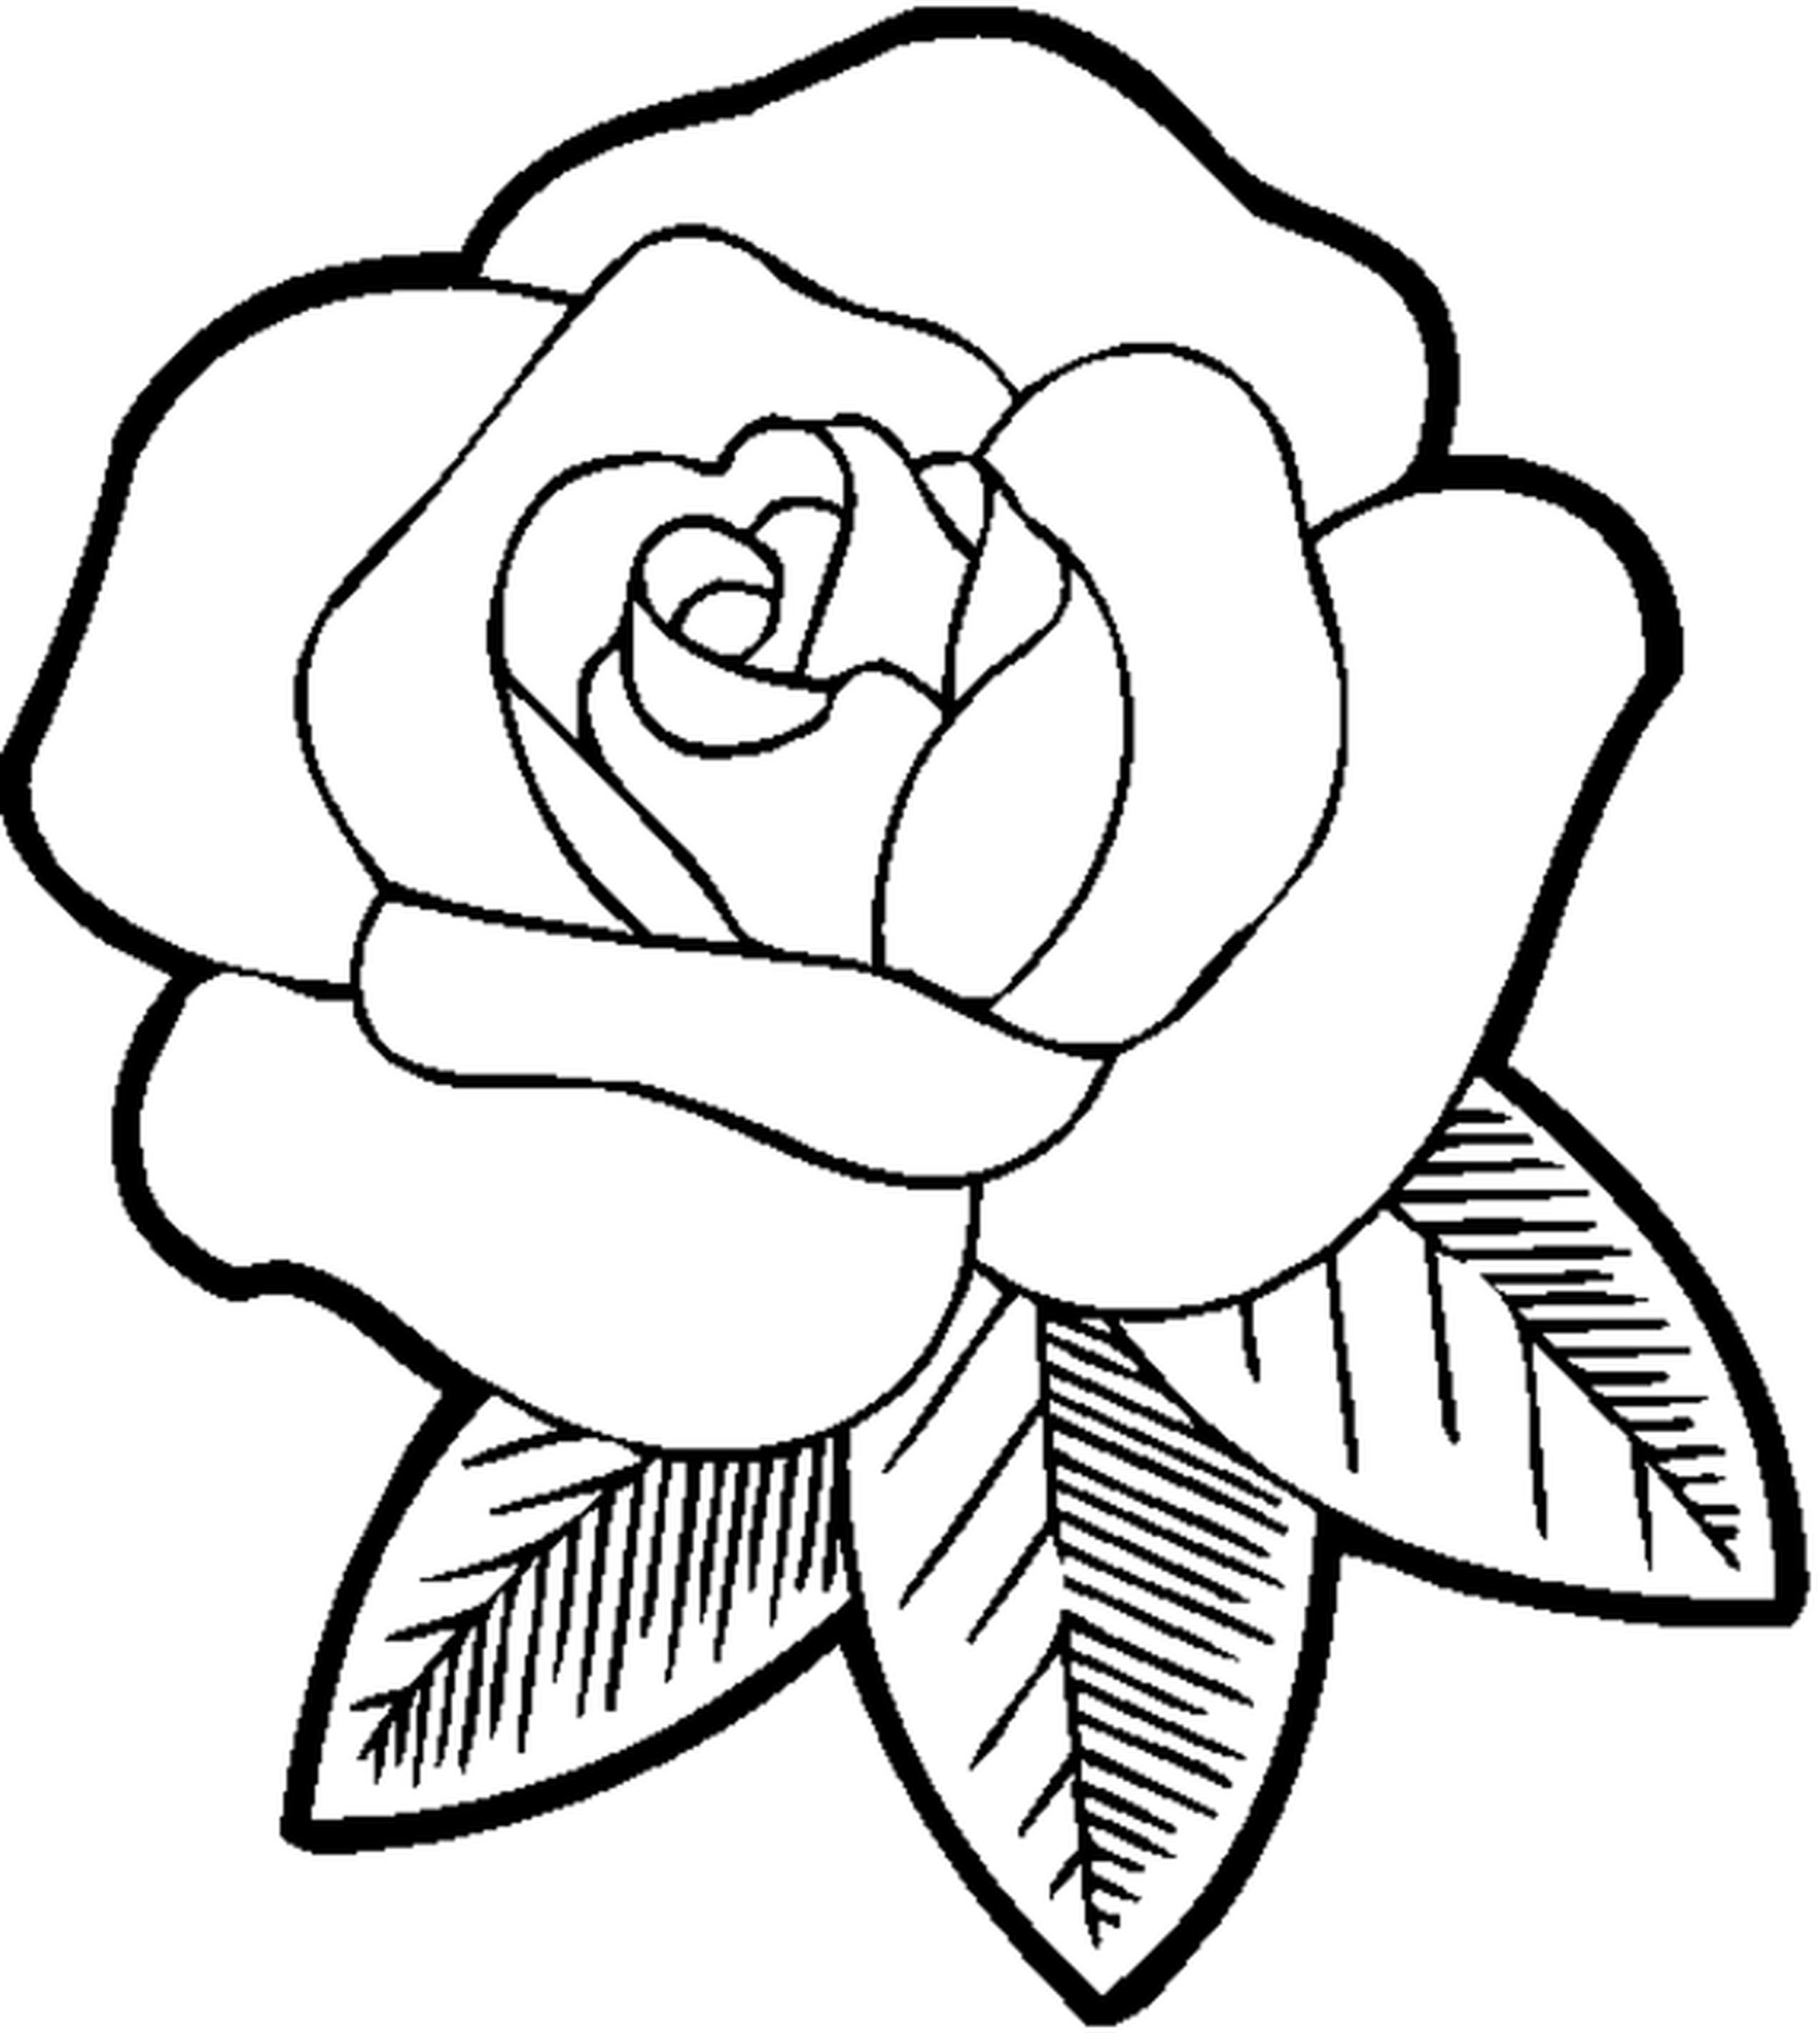 Red Rose coloring #20, Download drawings